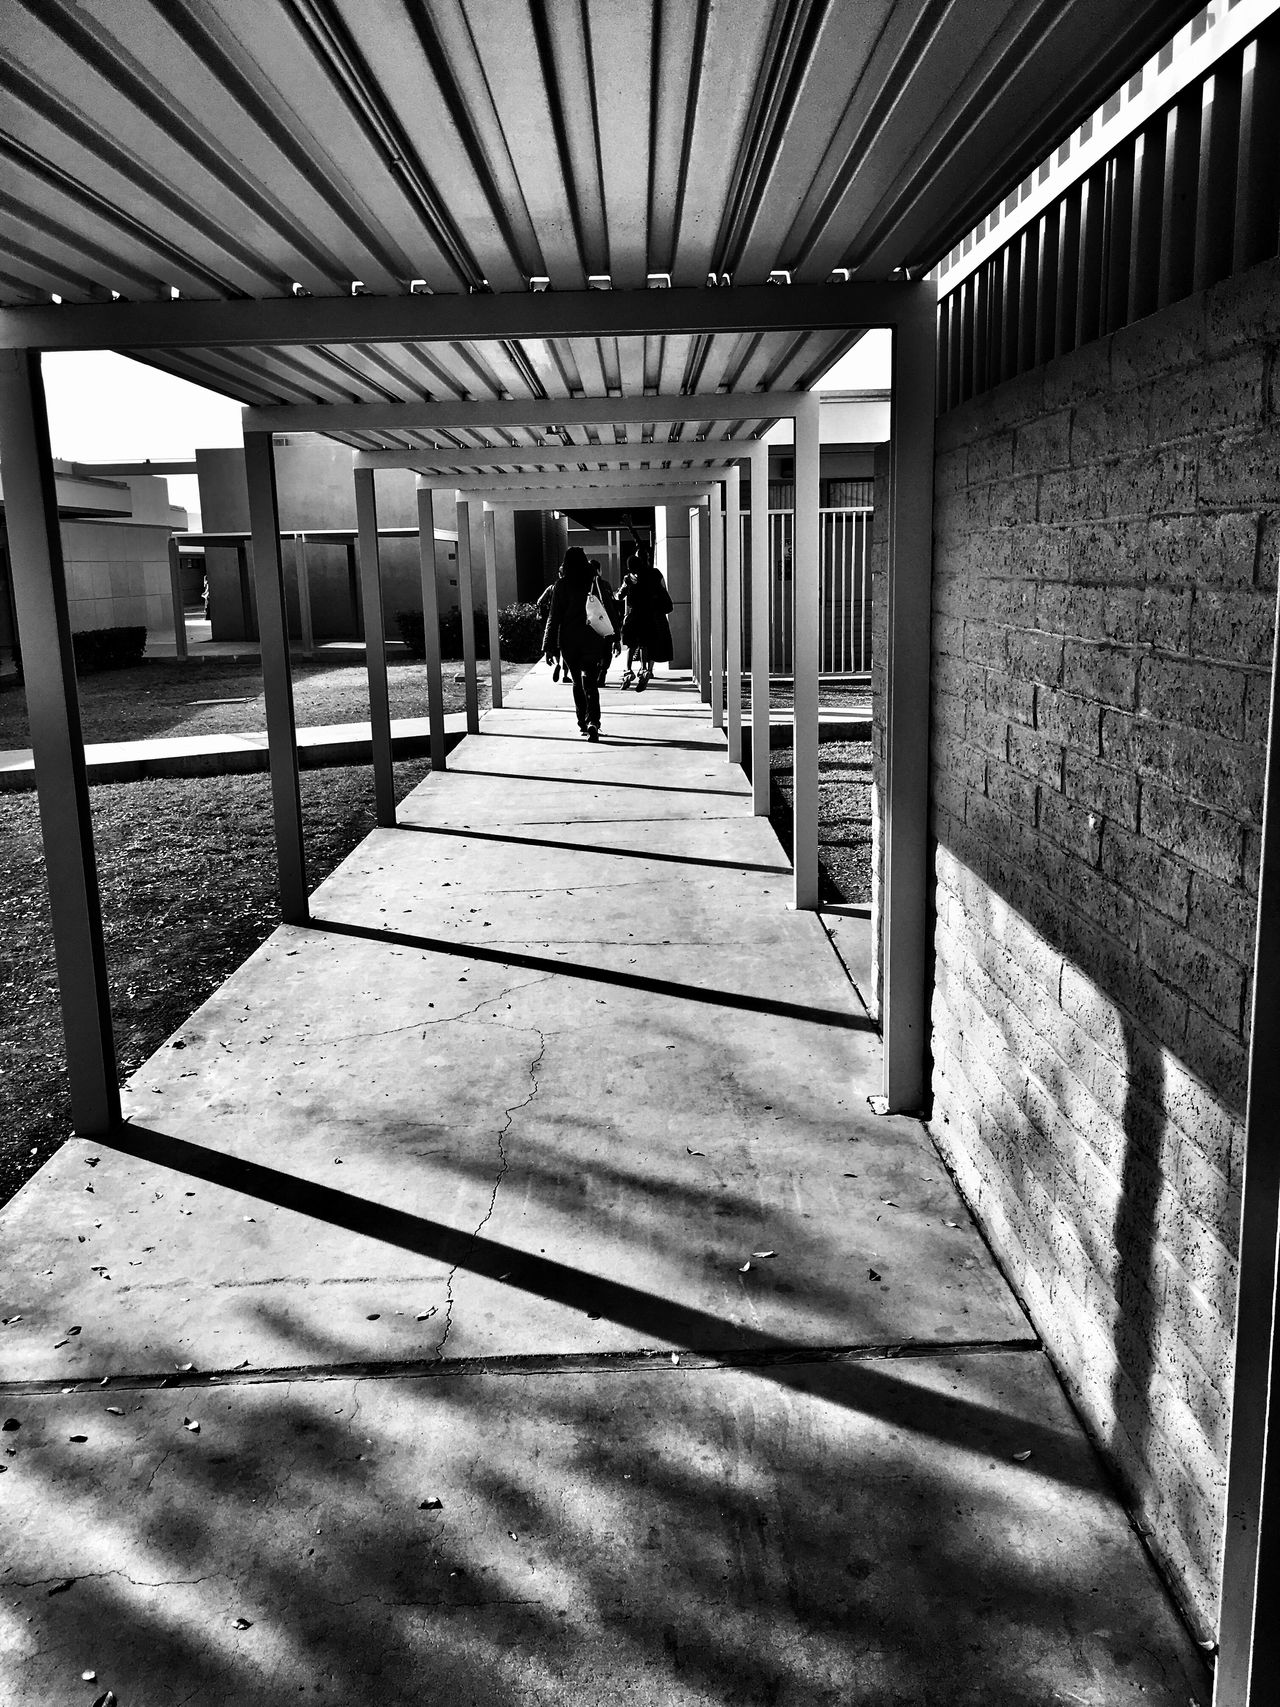 Hallway Real People Built Structure Architecture Lifestyles Full Length Rear View The Way Forward Leisure Activity Day Indoors  Men Women One Person EyeEm Gallery Check This Out Popular Photos Alleyezonmayphotography Black And White Photography EyeEm Best Shots Mesa Arizona